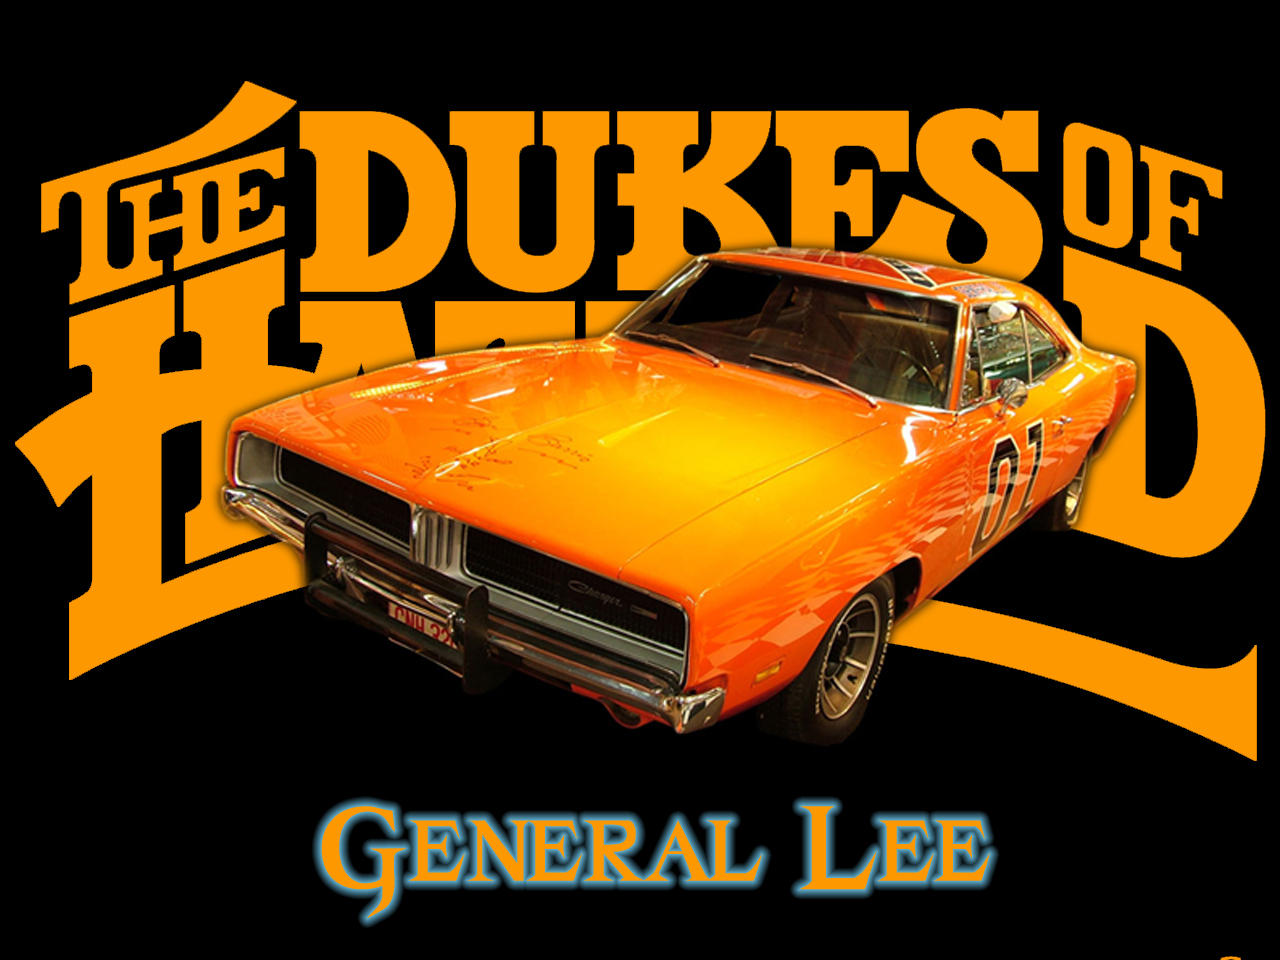 Dukes of Hazzard General Lee Wallpaper Lee Dukes of Hazzard by